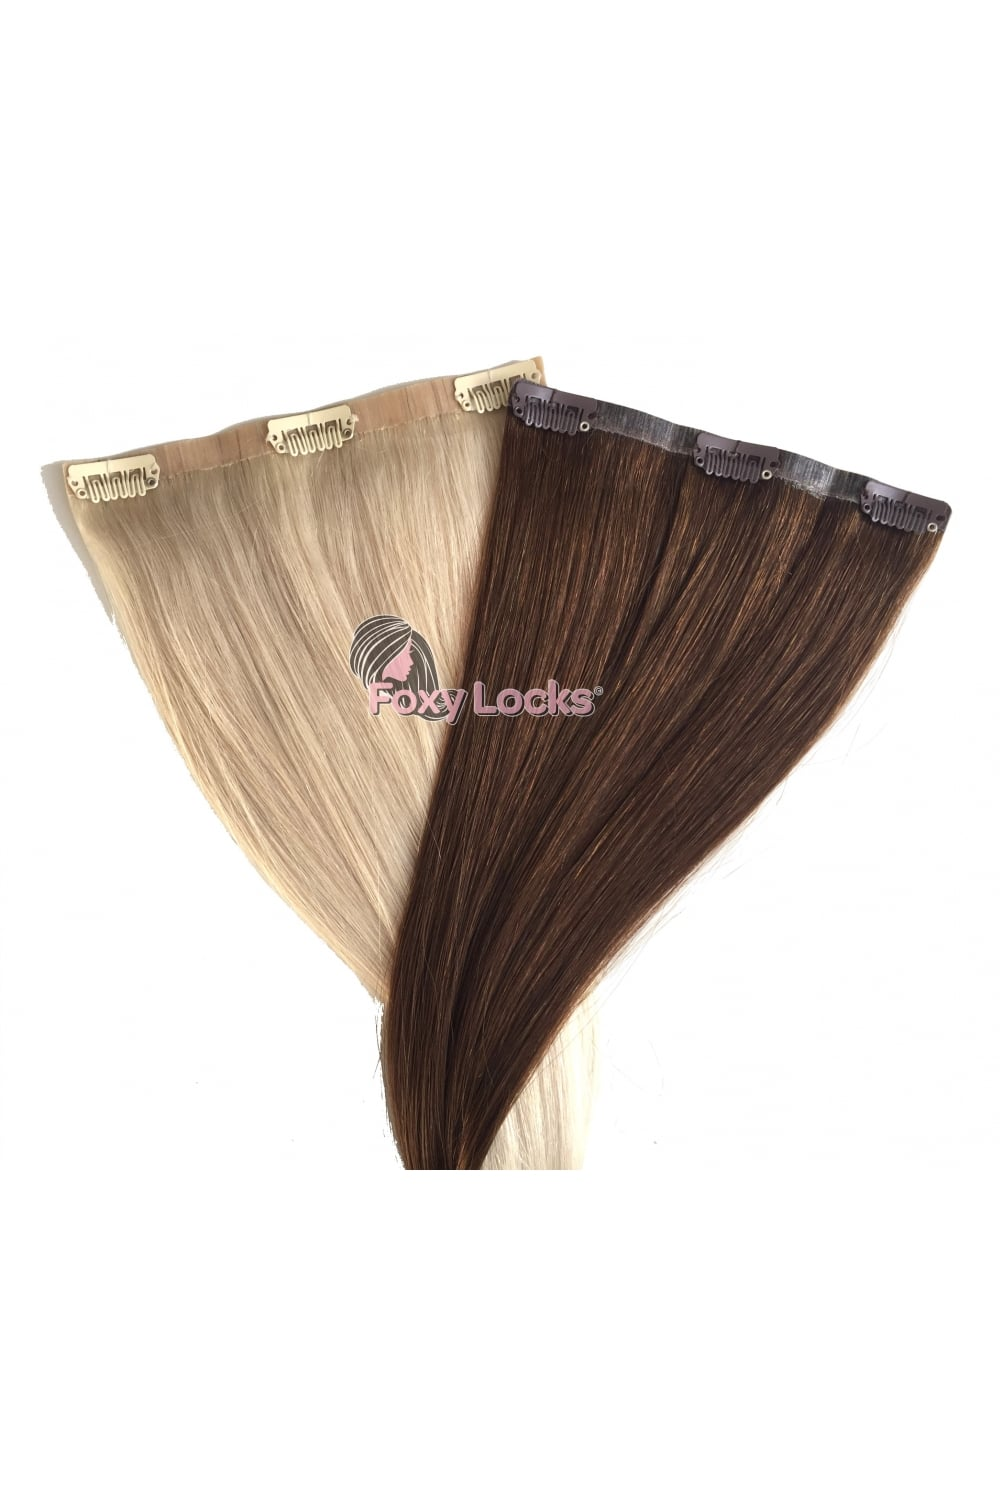 sunkissed brown regular seamless clip in human hair extensions 125g